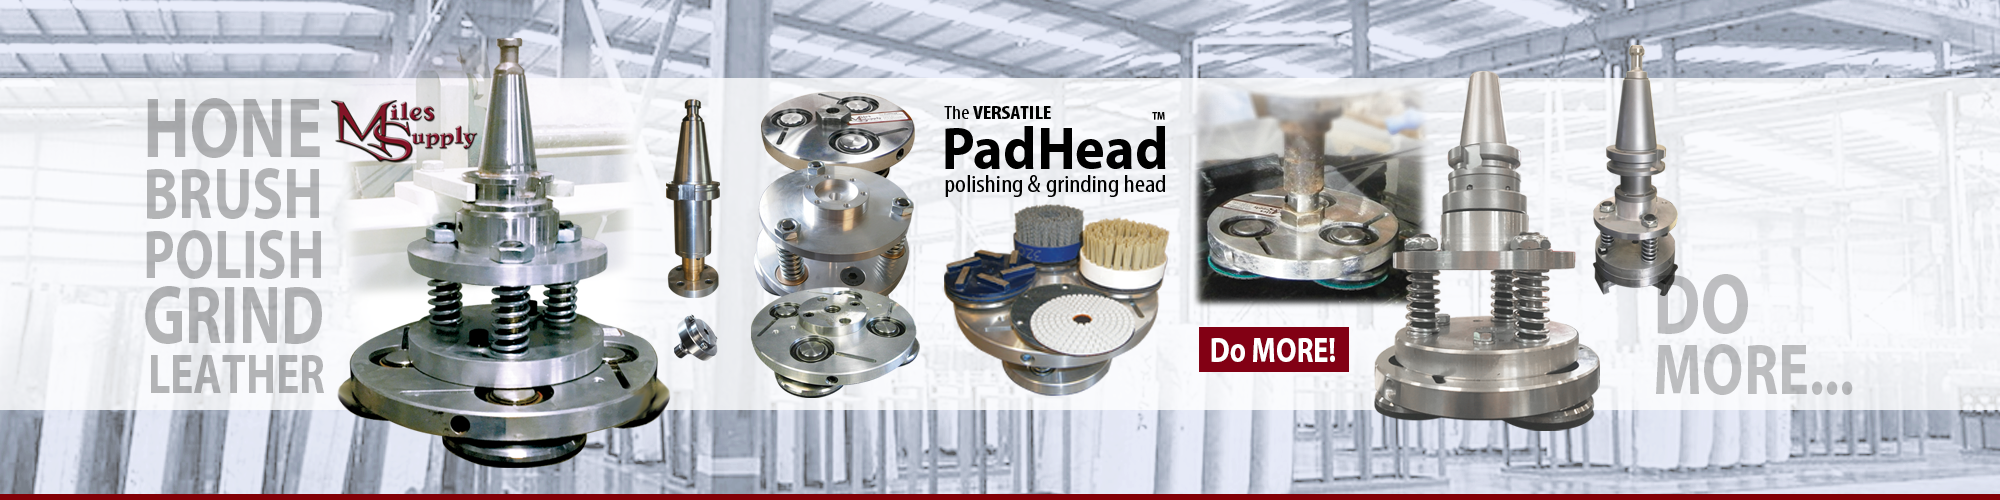 Do MORE with PadHead